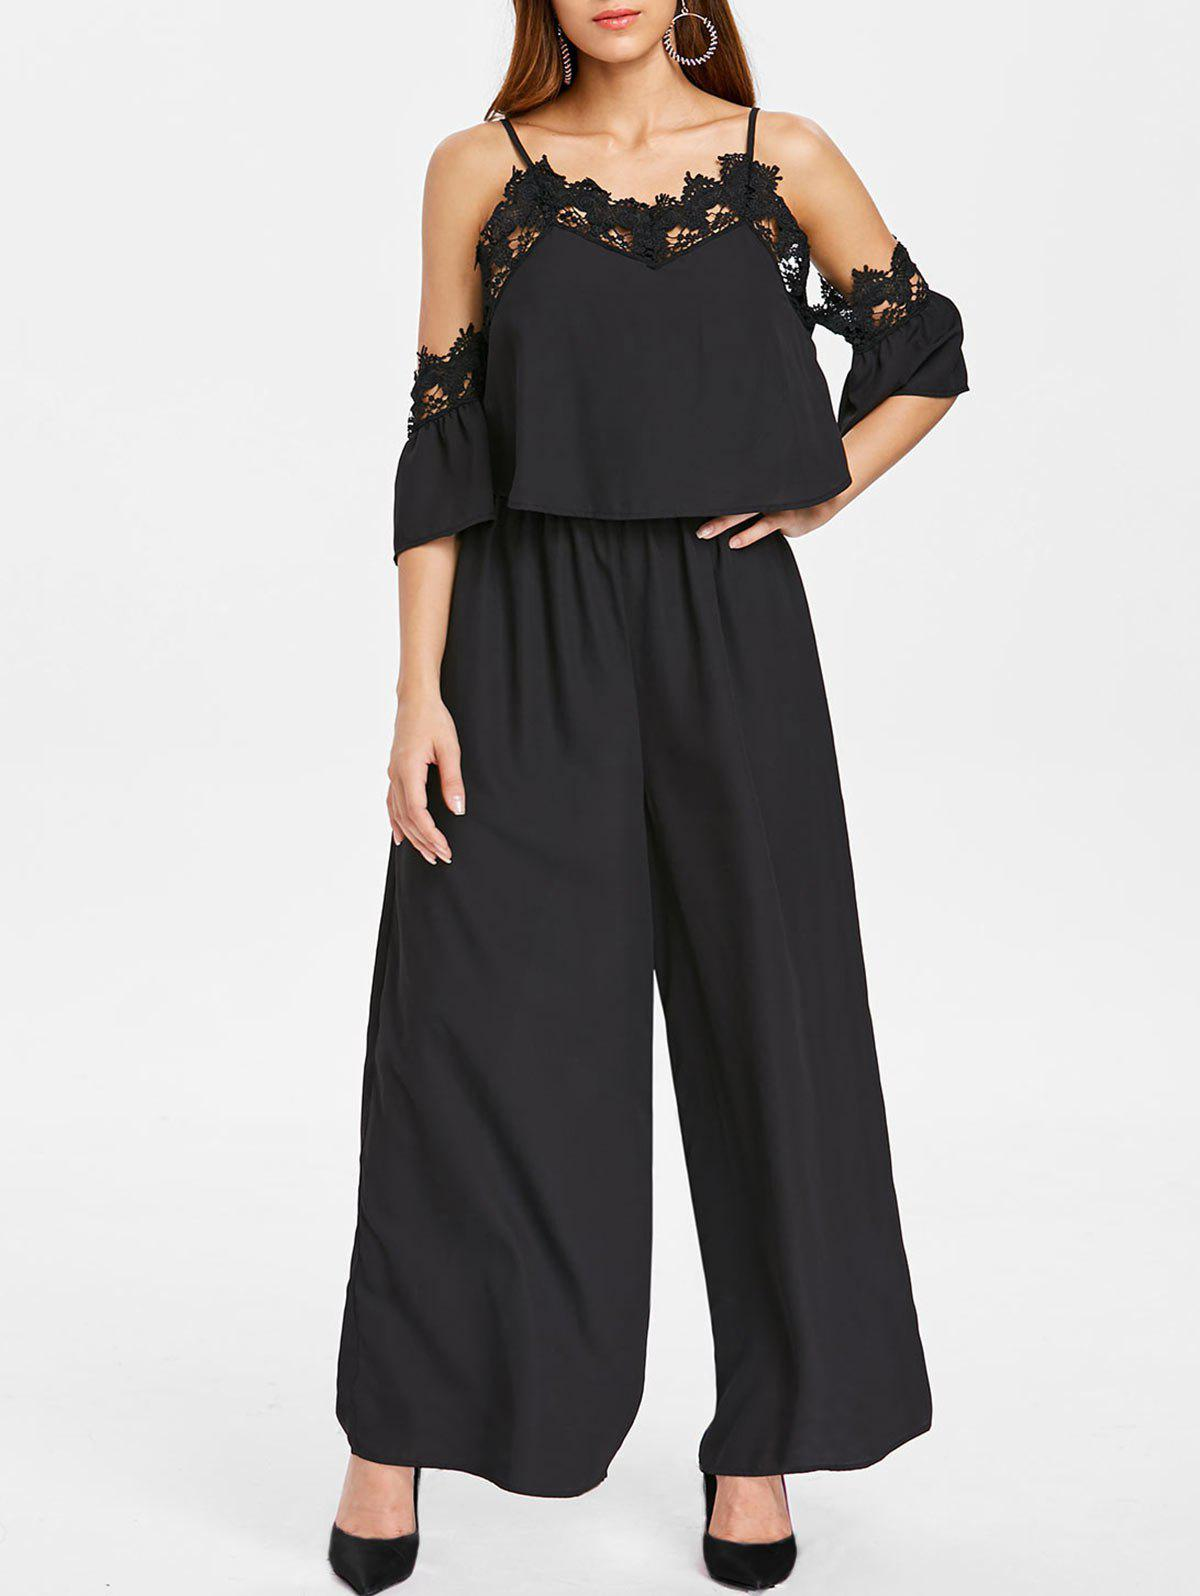 Open Shoulder Lace Insert Palazzo Jumpsuit - BLACK L